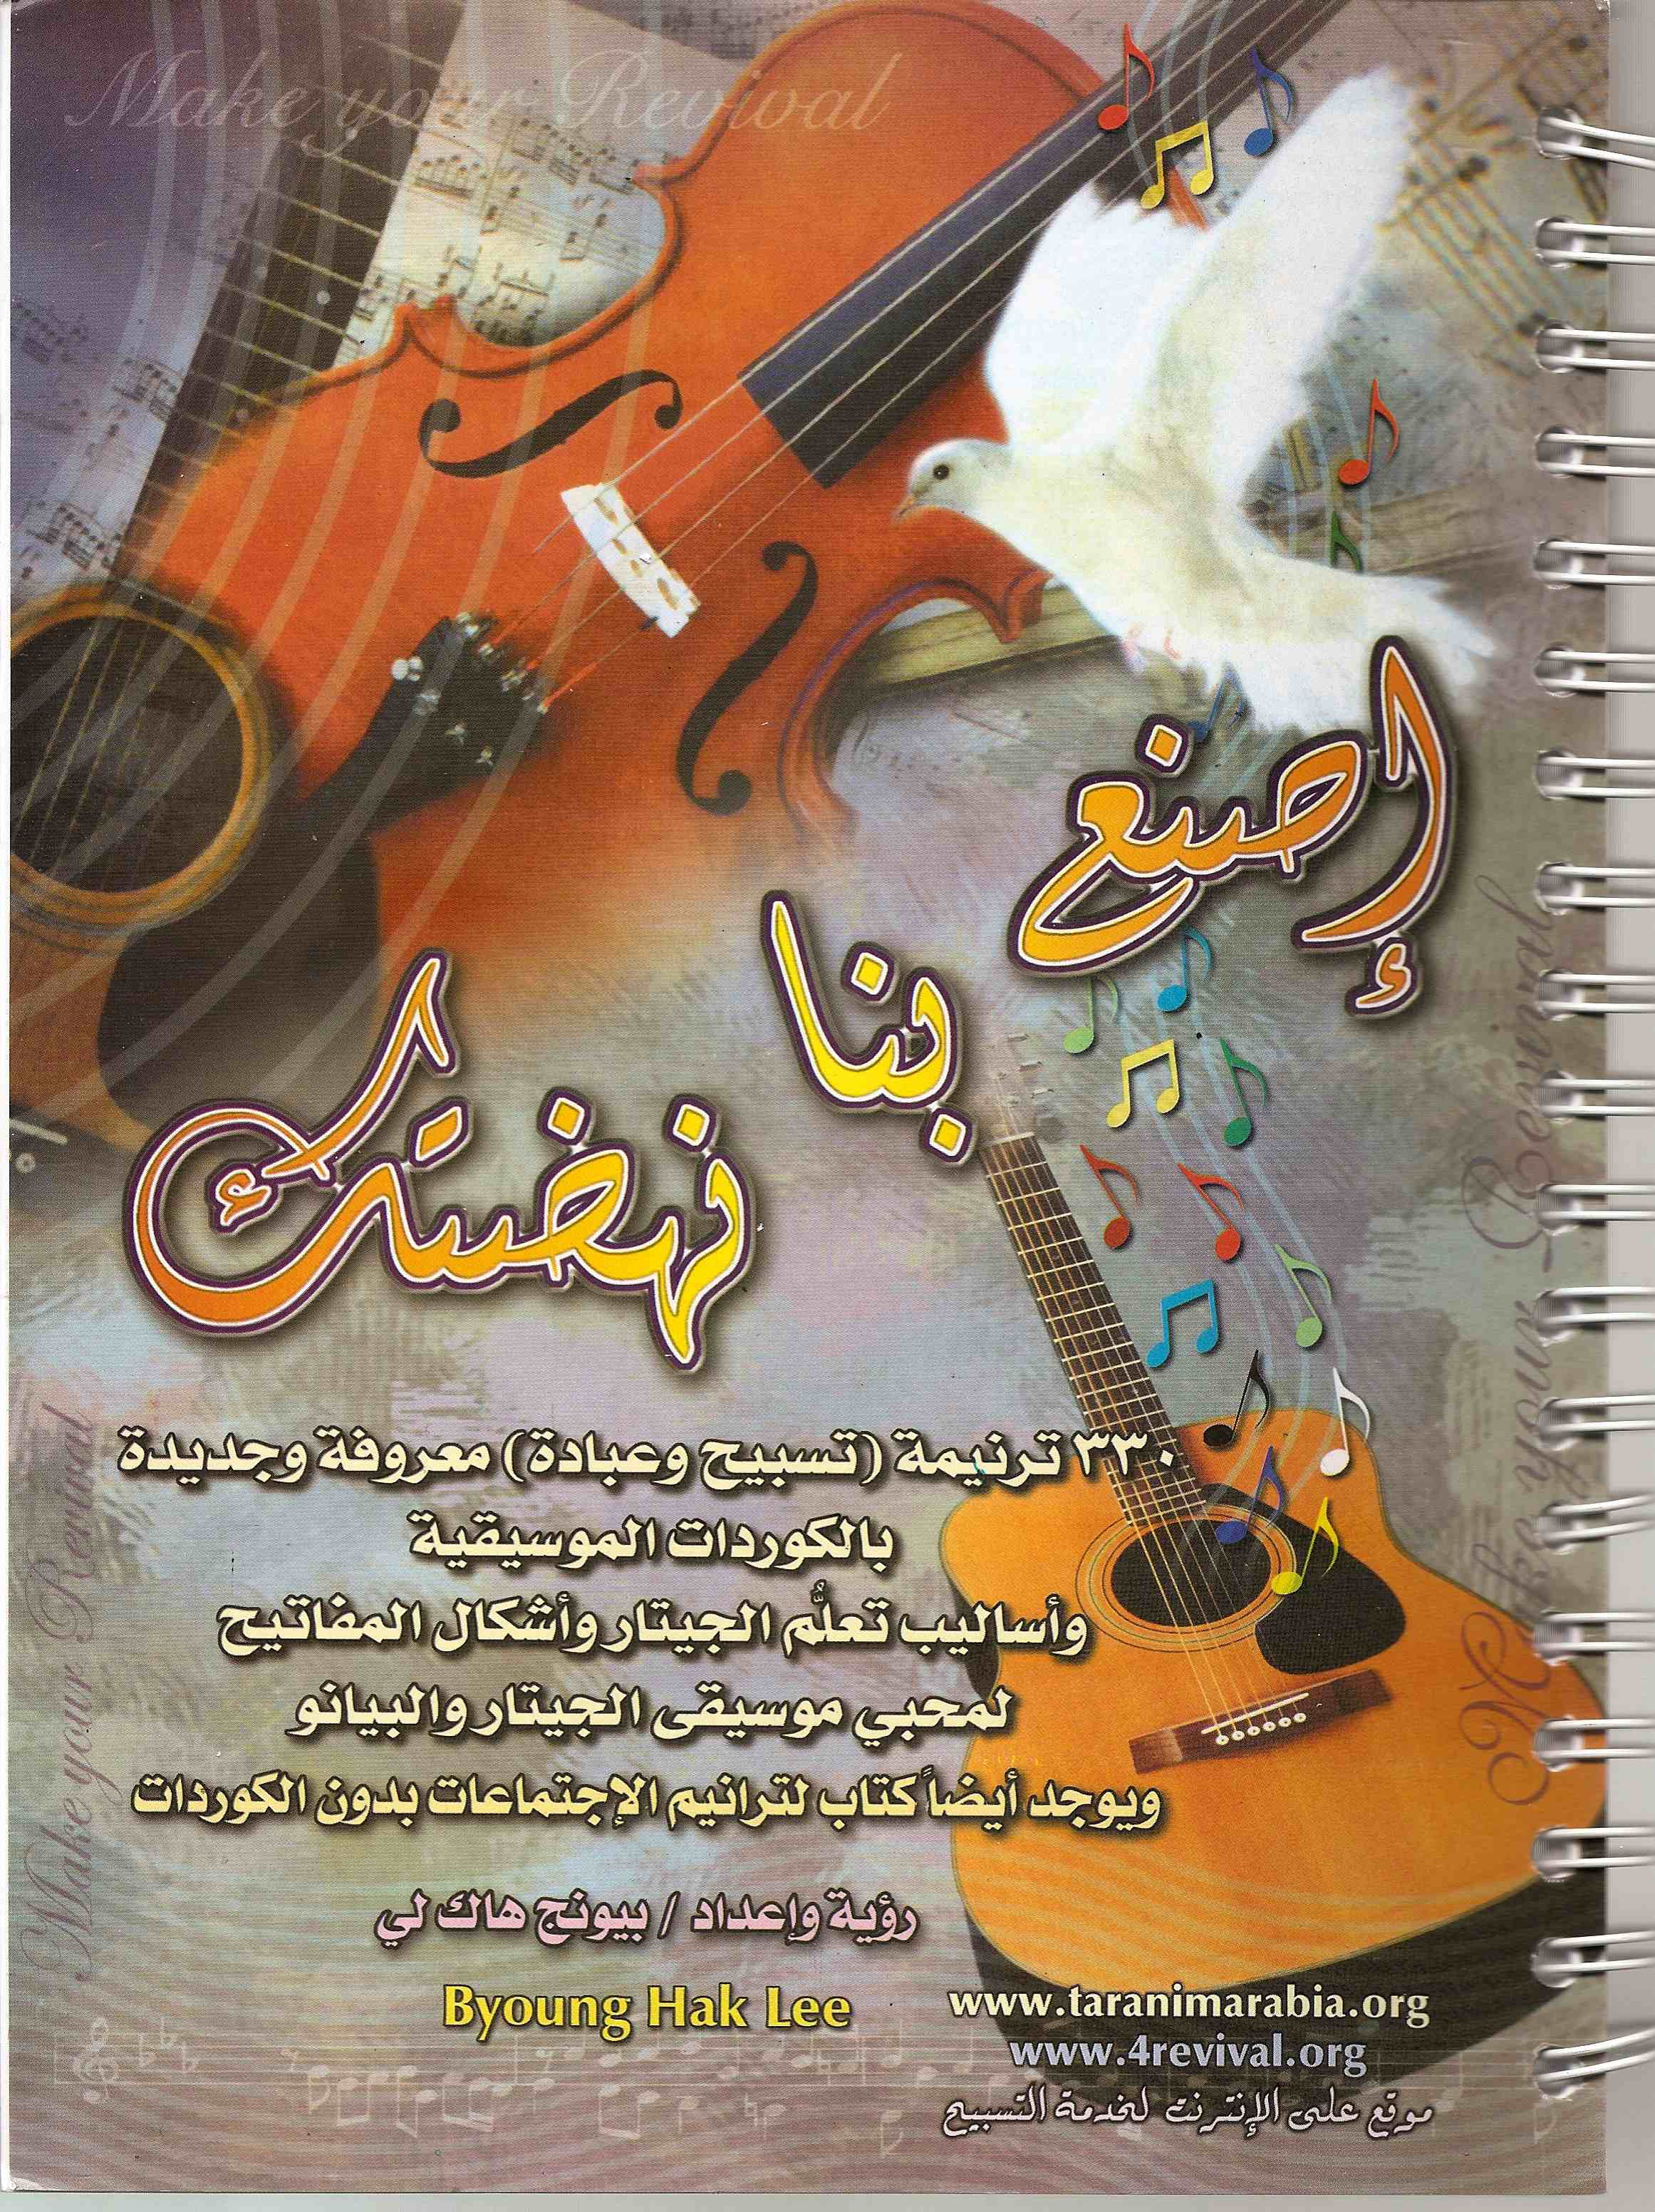 Bring in us a Revival Chord Book of Arabic Songs